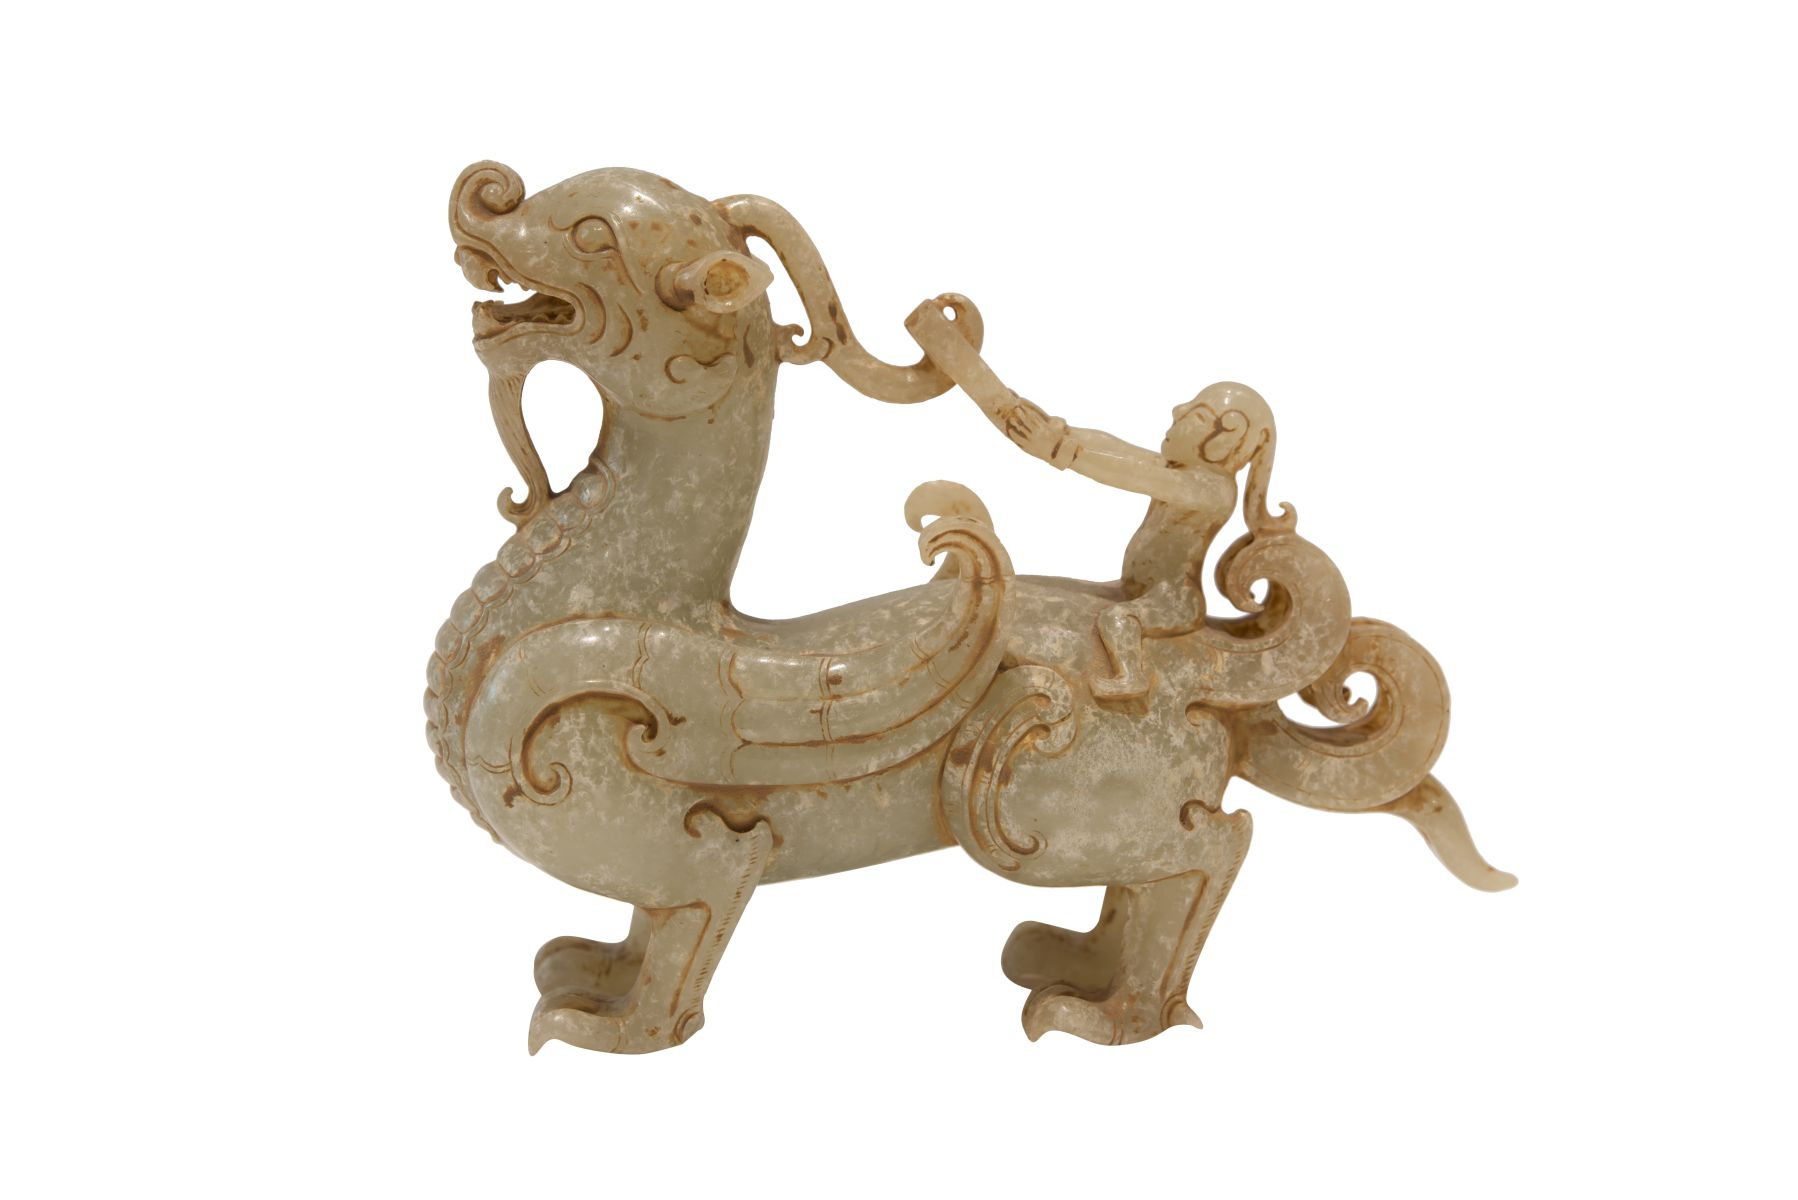 #136 Mythical animal jade 20th century | Fabeltier Jade 20. Jh Image